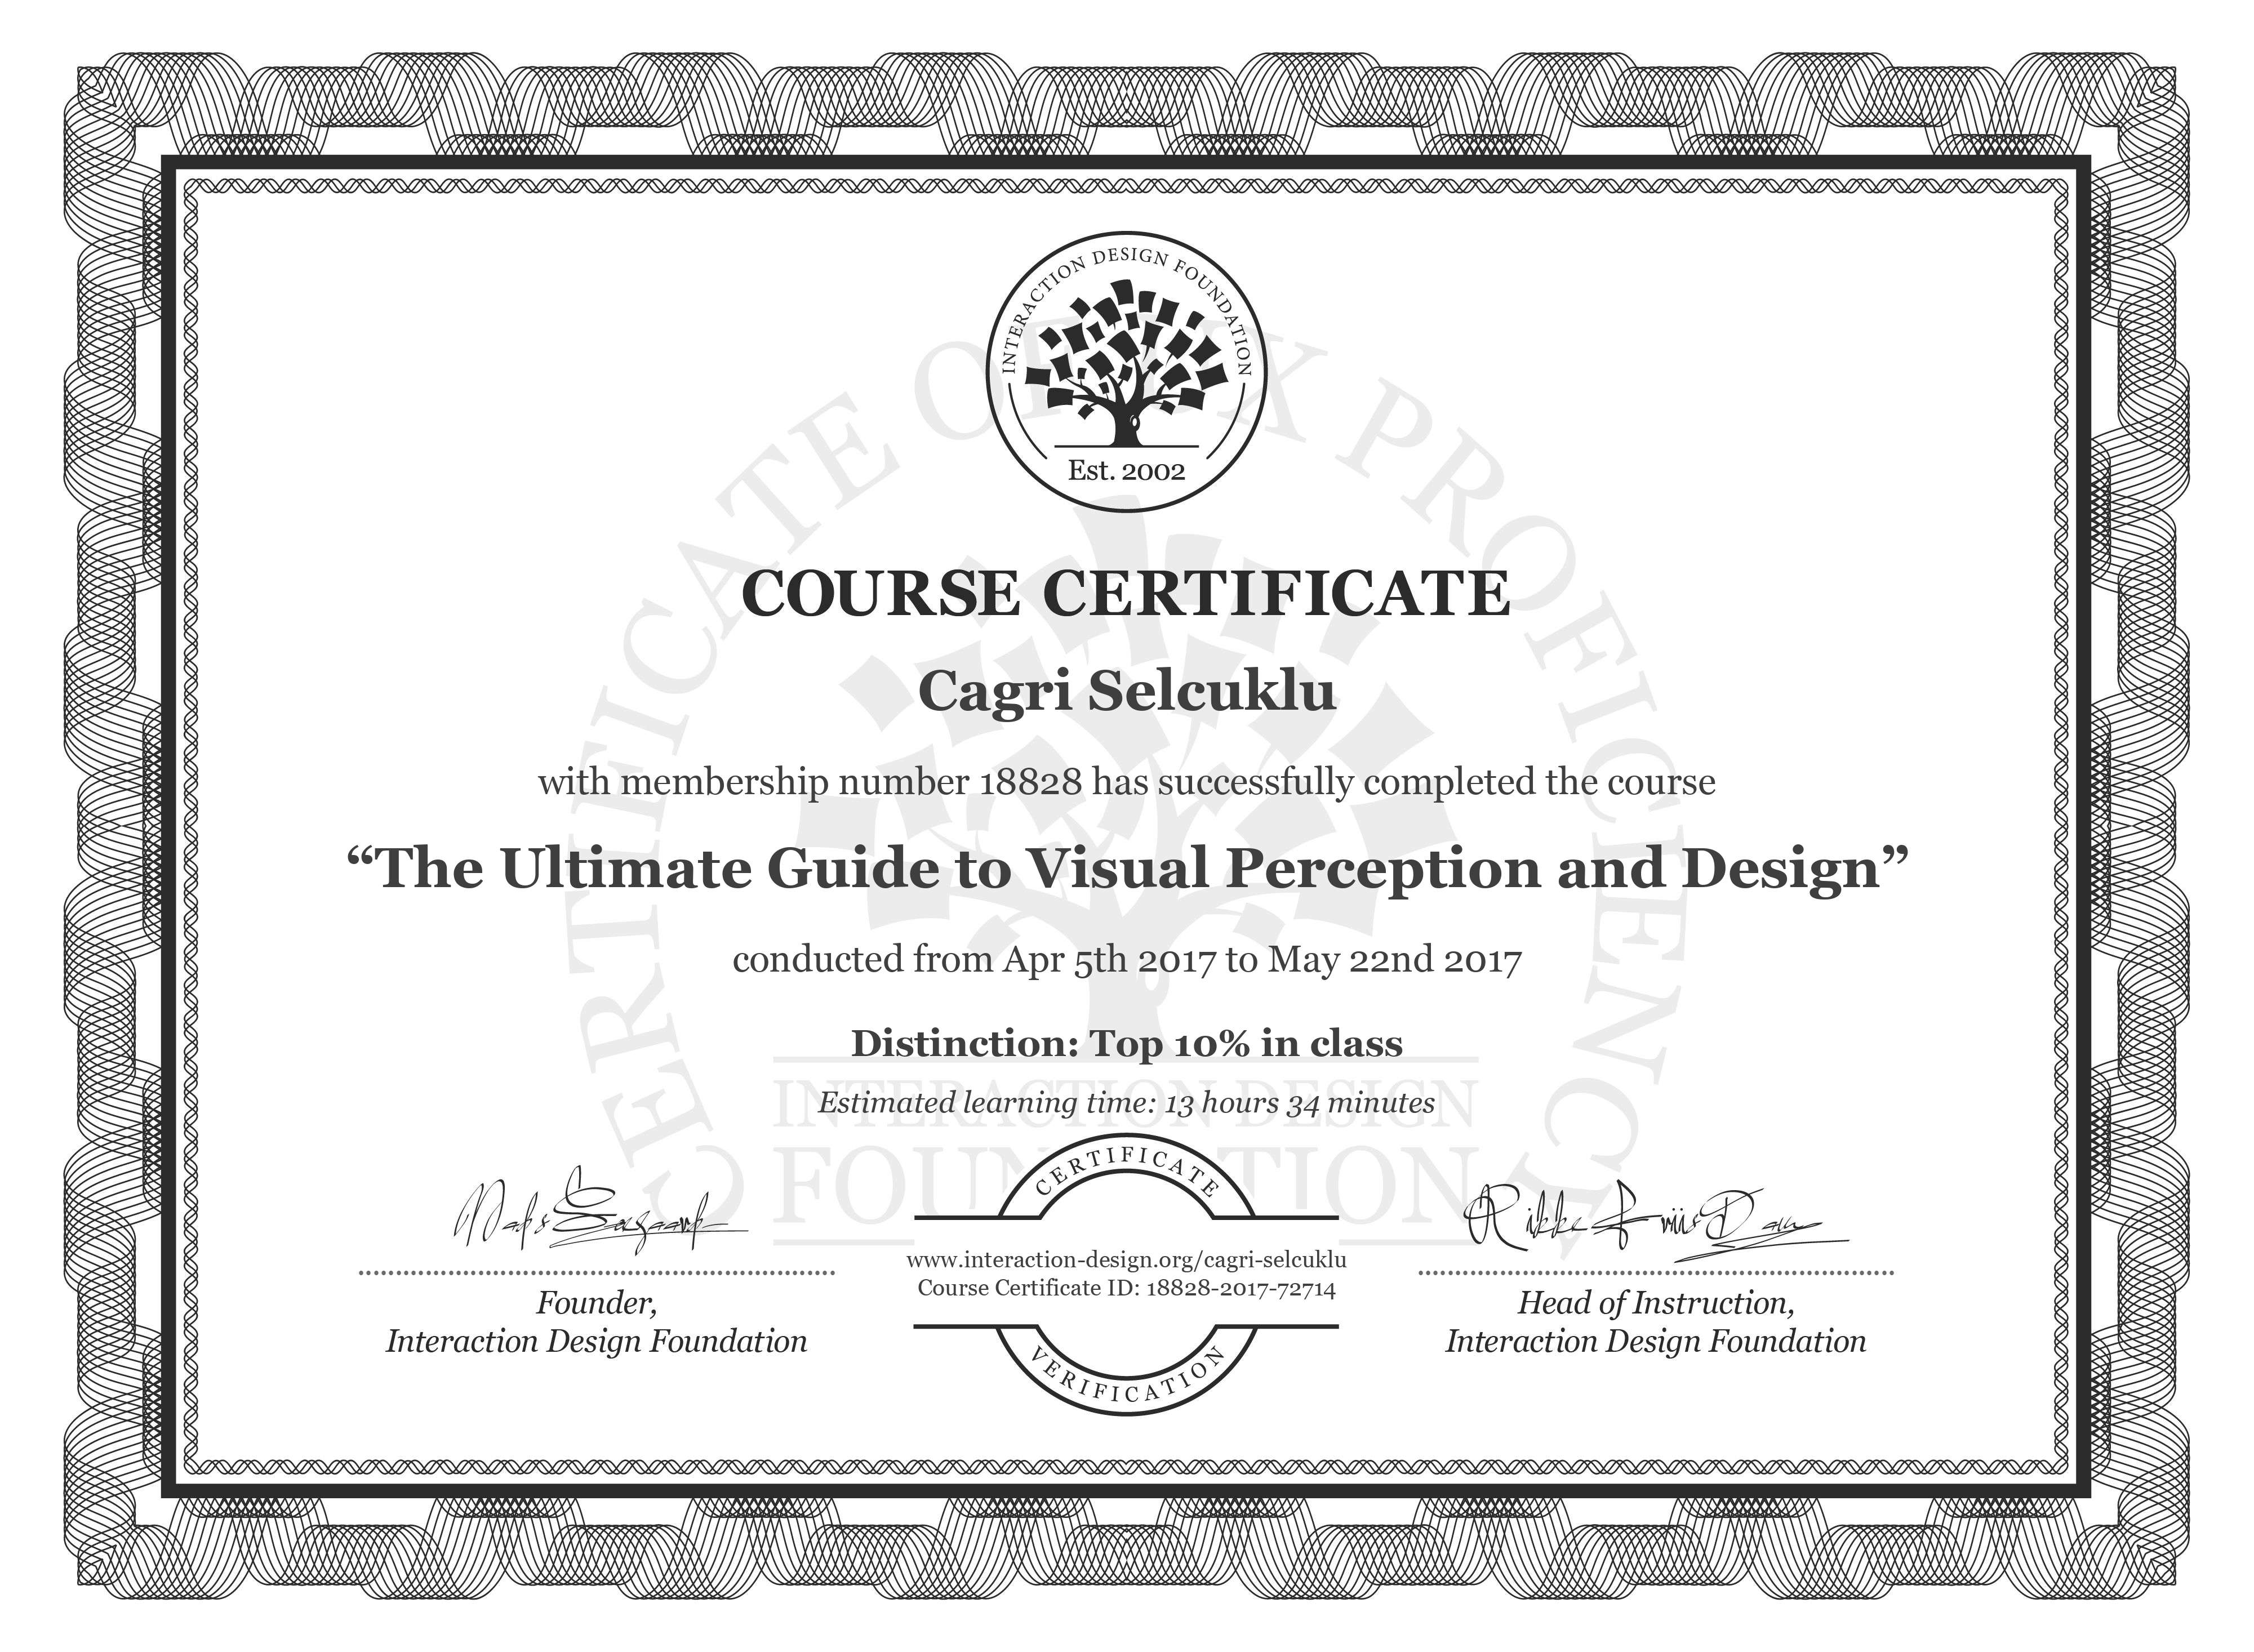 Cagri Selcuklu's Course Certificate: The Ultimate Guide to Visual Perception and Design